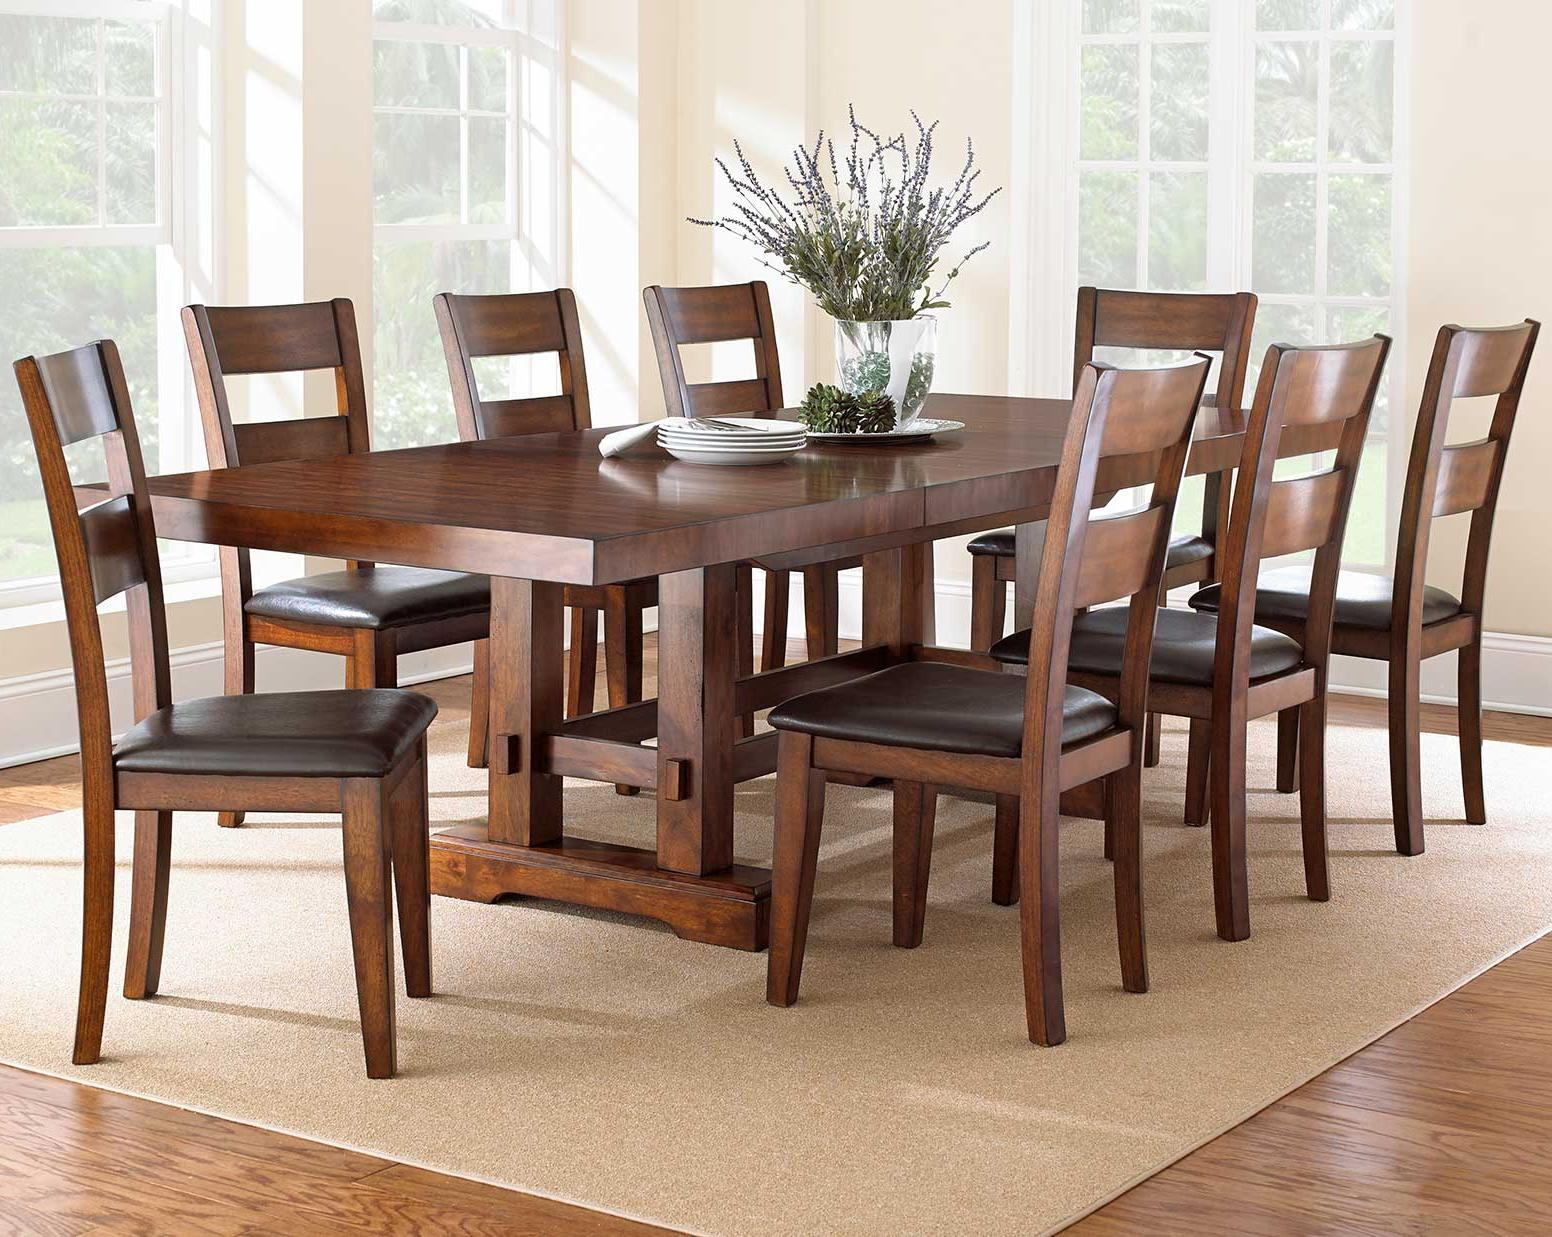 Zappa 9 Piece Dining Set by Steve Silver at Northeast Factory Direct